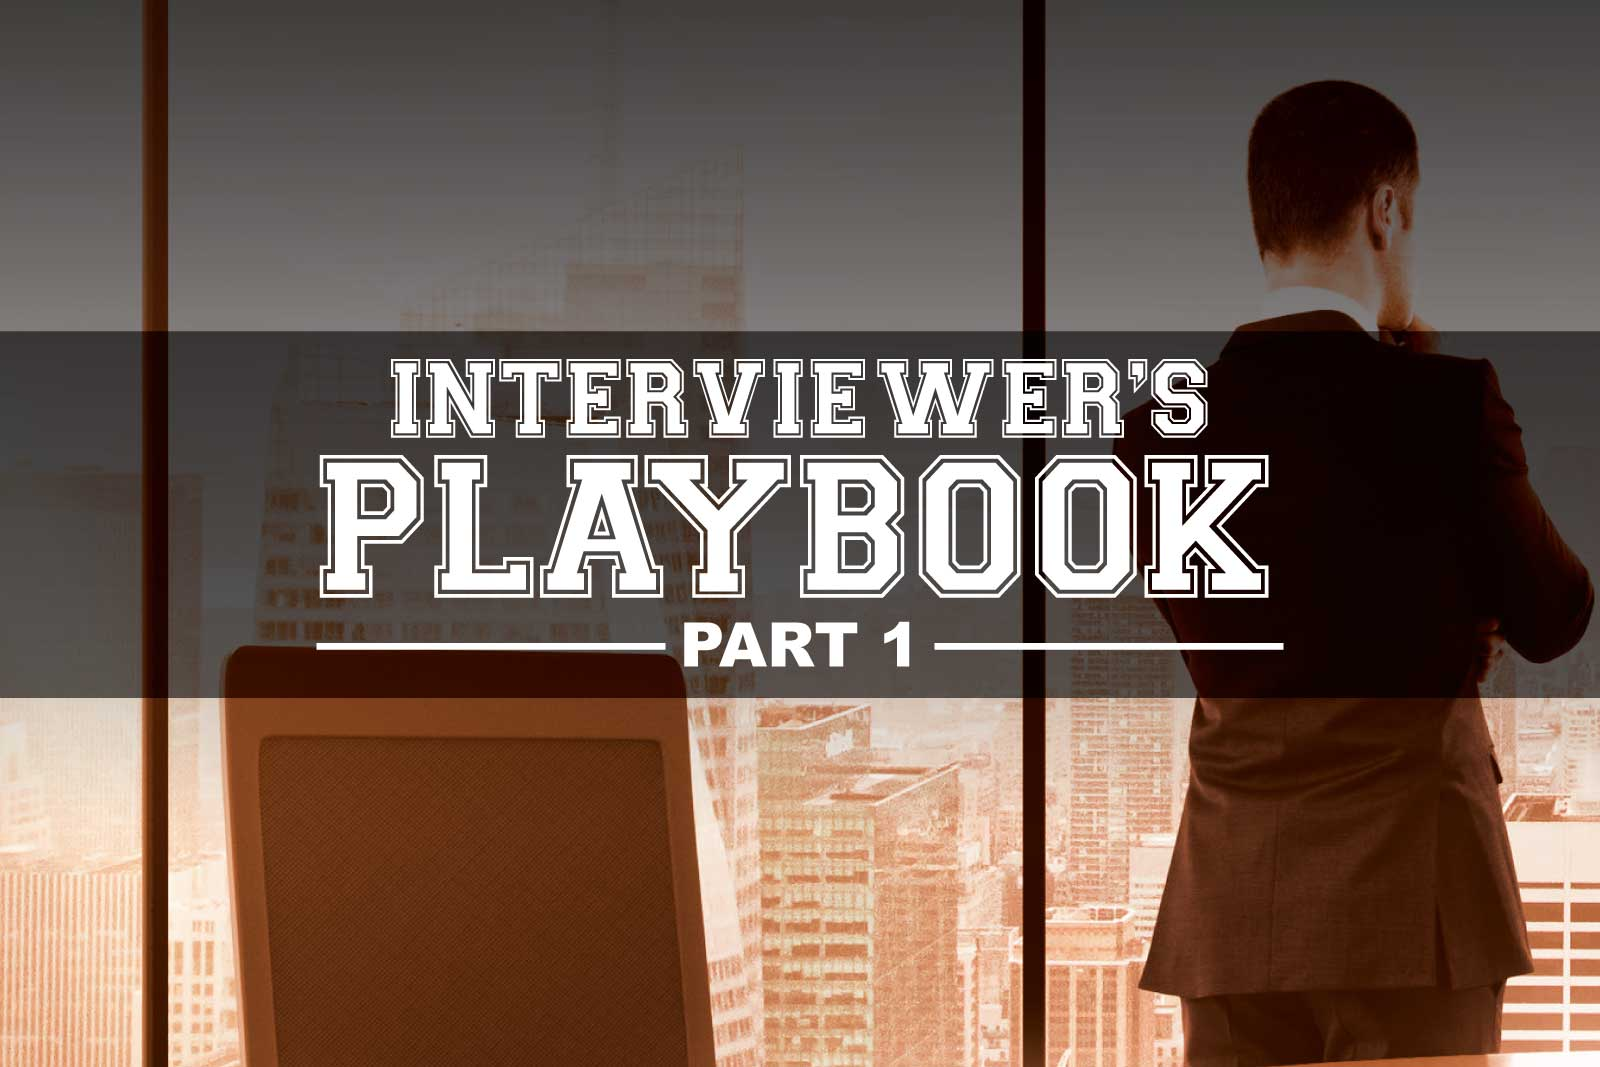 Jon Dwoskin Business Blog: Interviewer's Playbook: 10 Quick Tips to Kill It in Every Interview